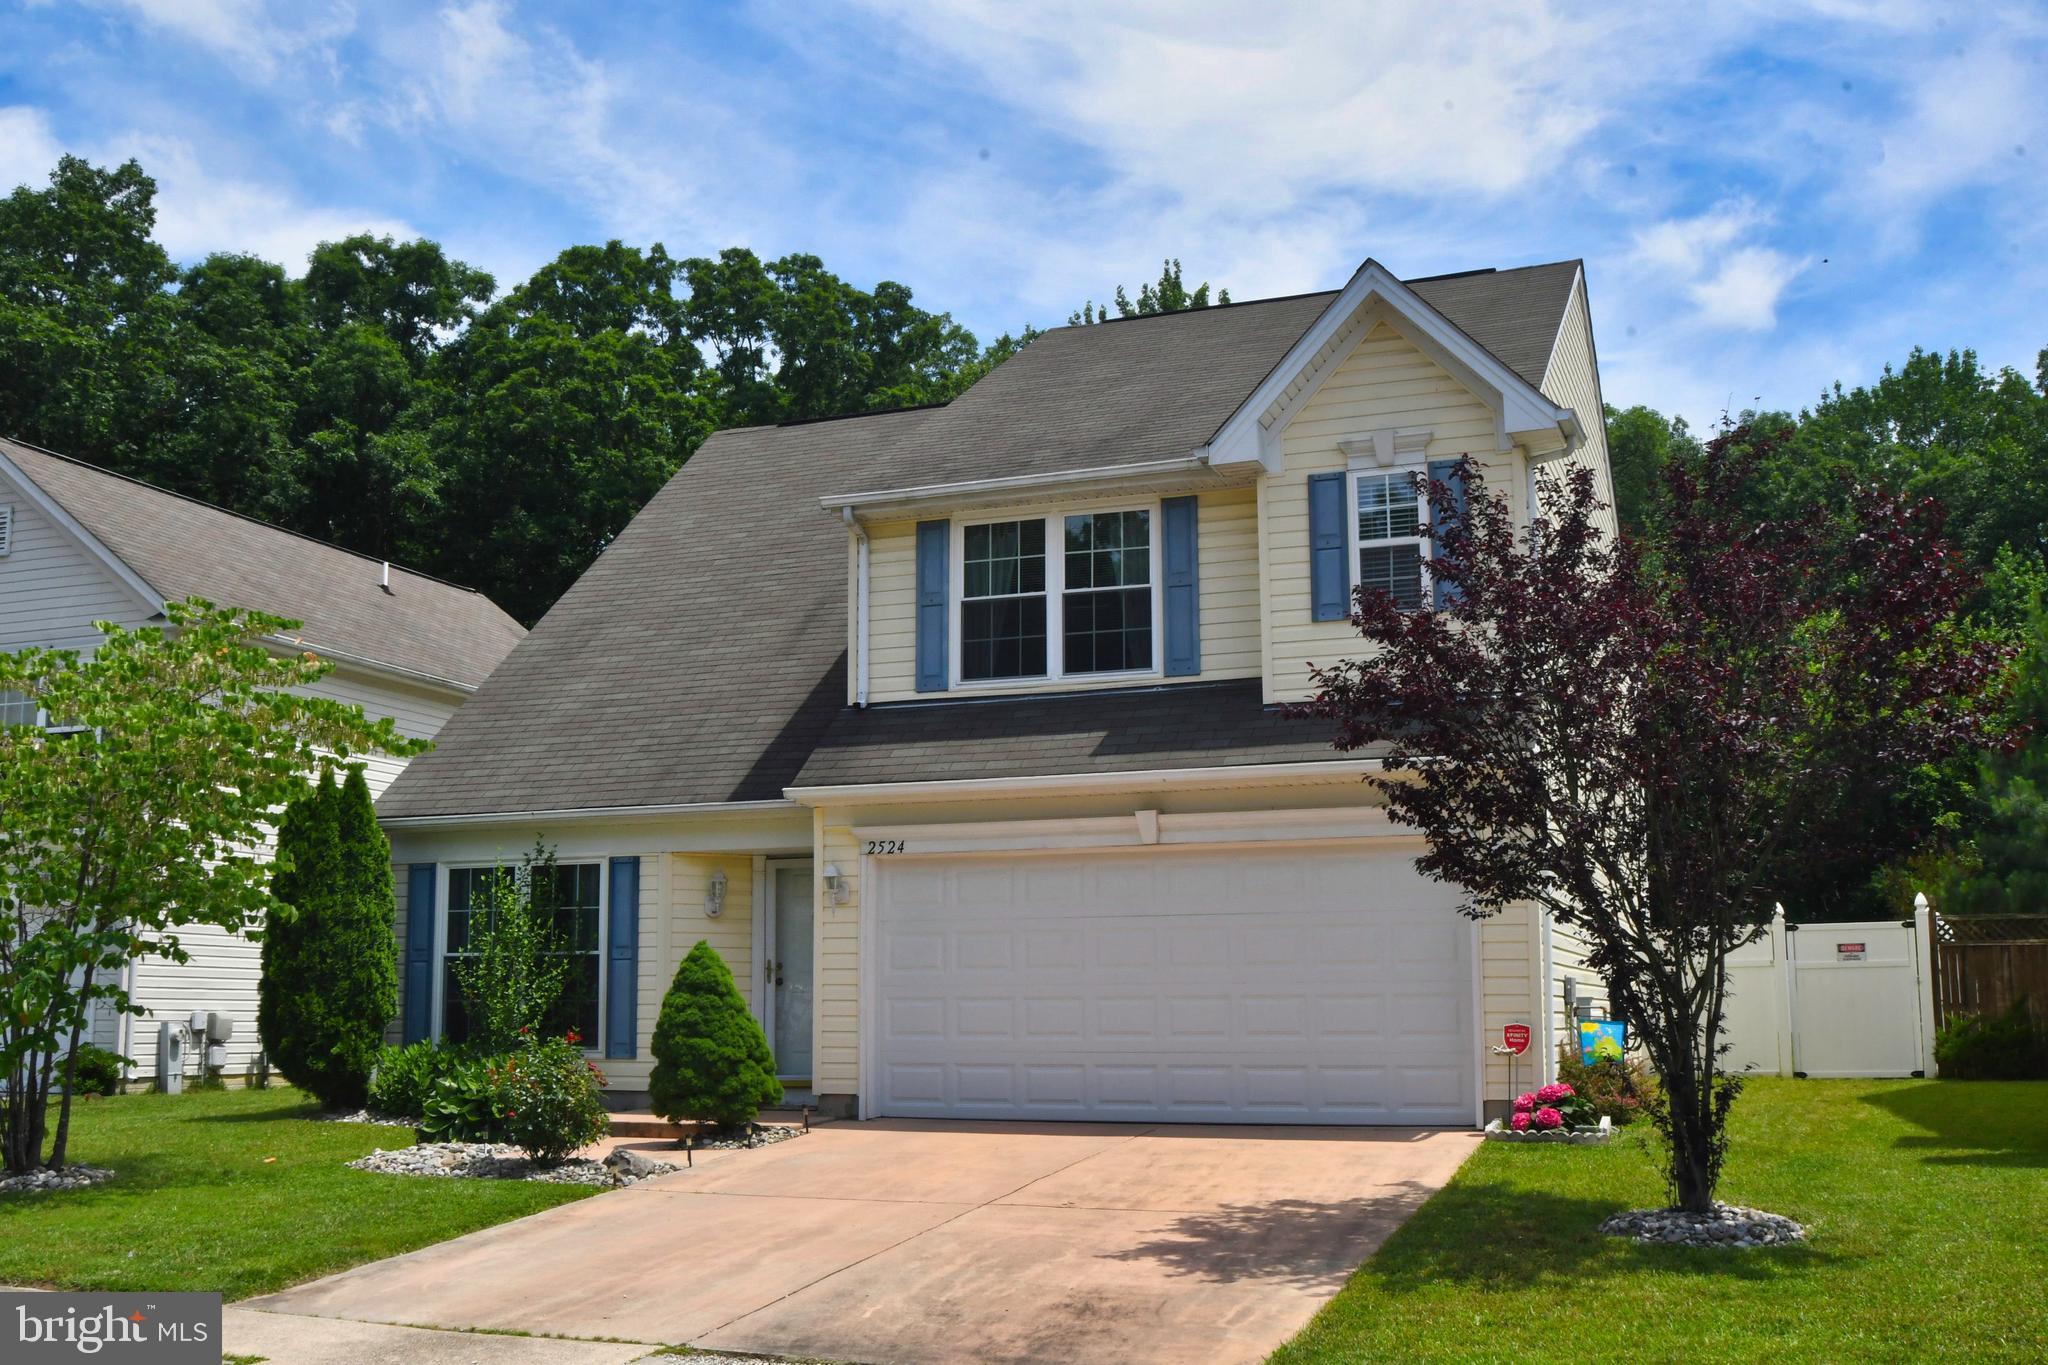 2524 INDIANS LAIR, EDGEWOOD, MD 21040